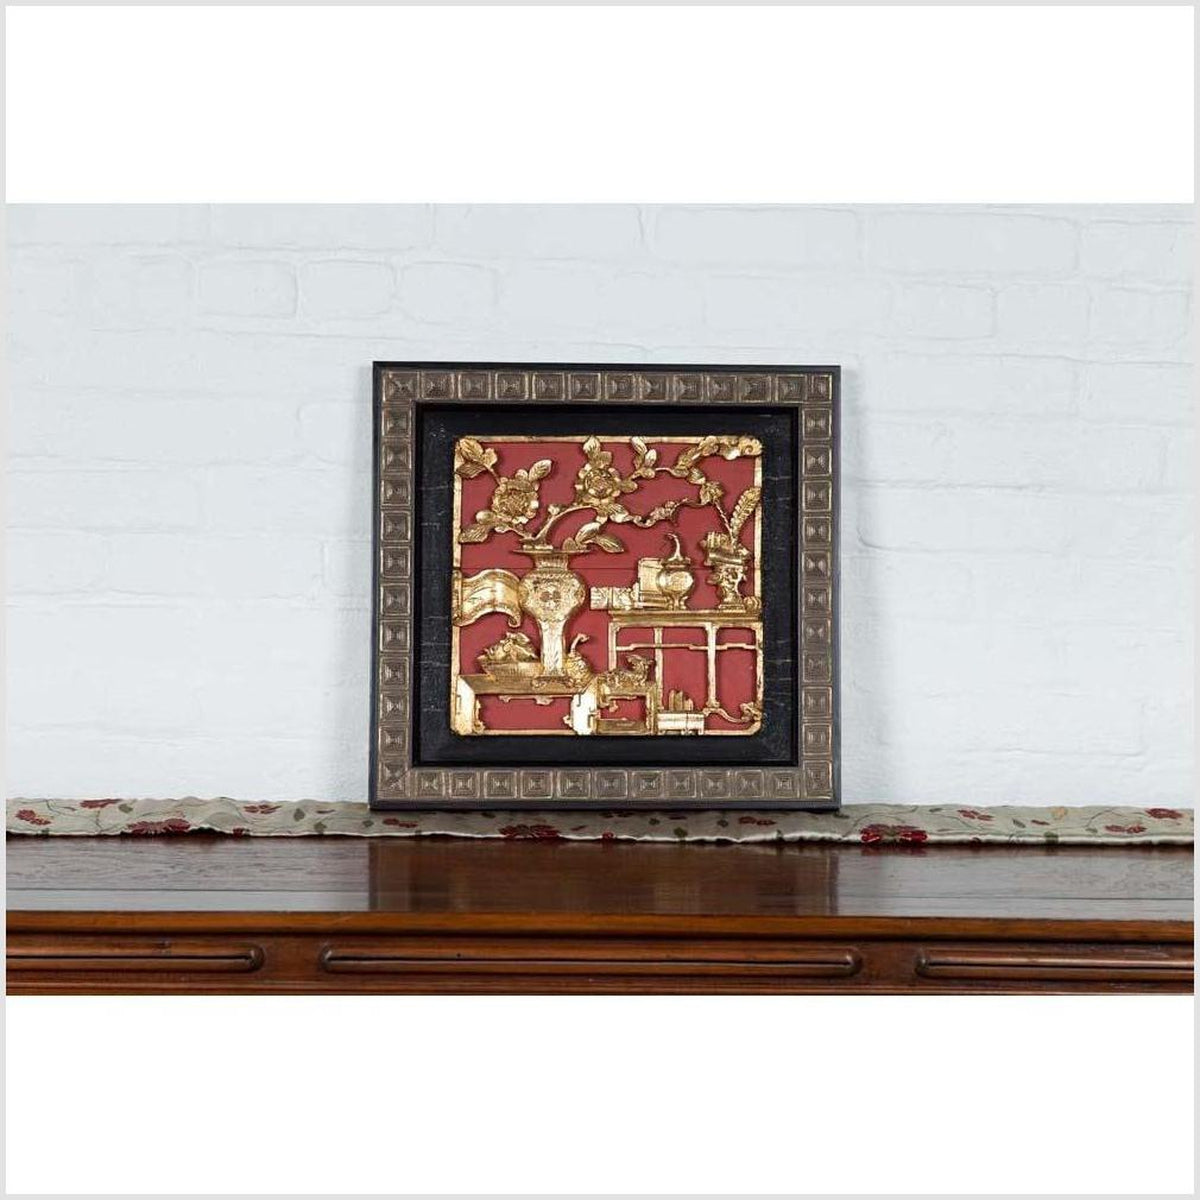 Chinese Antique Giltwood and Red Painted Floral Architectural Panel in New Frame